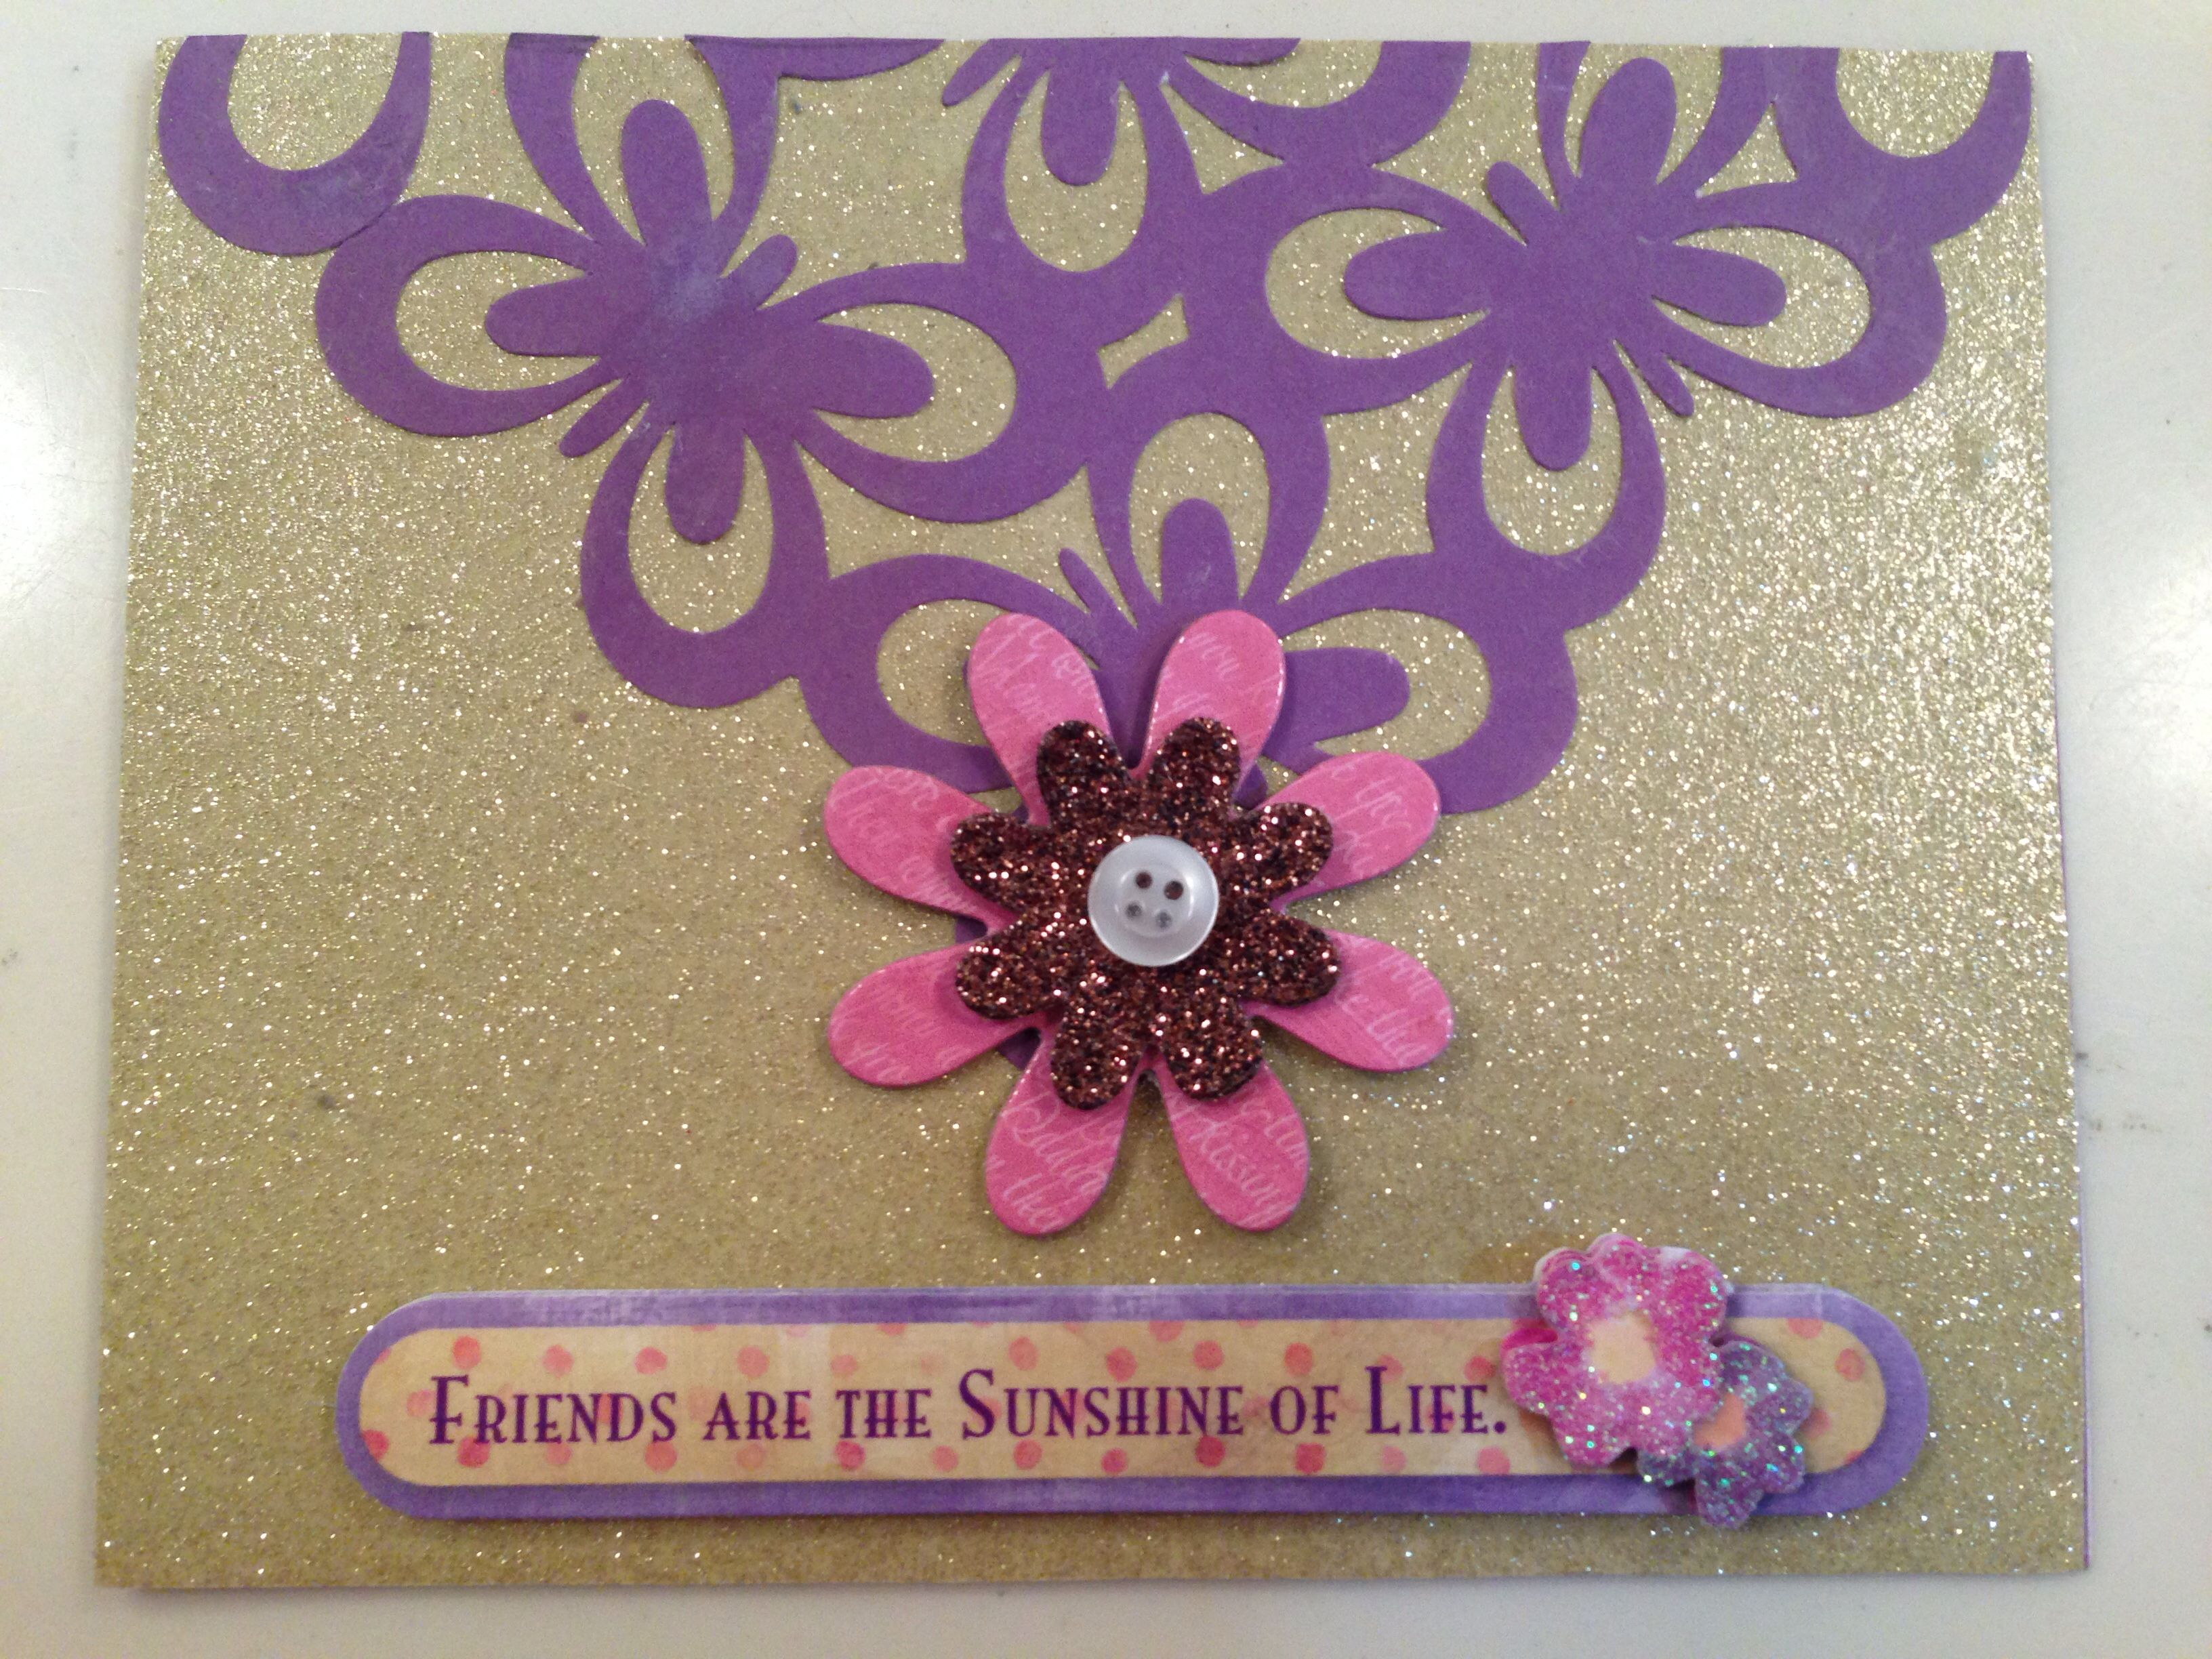 This Is A Sweet Handmade Homemade Greeting Card That I Made To Send